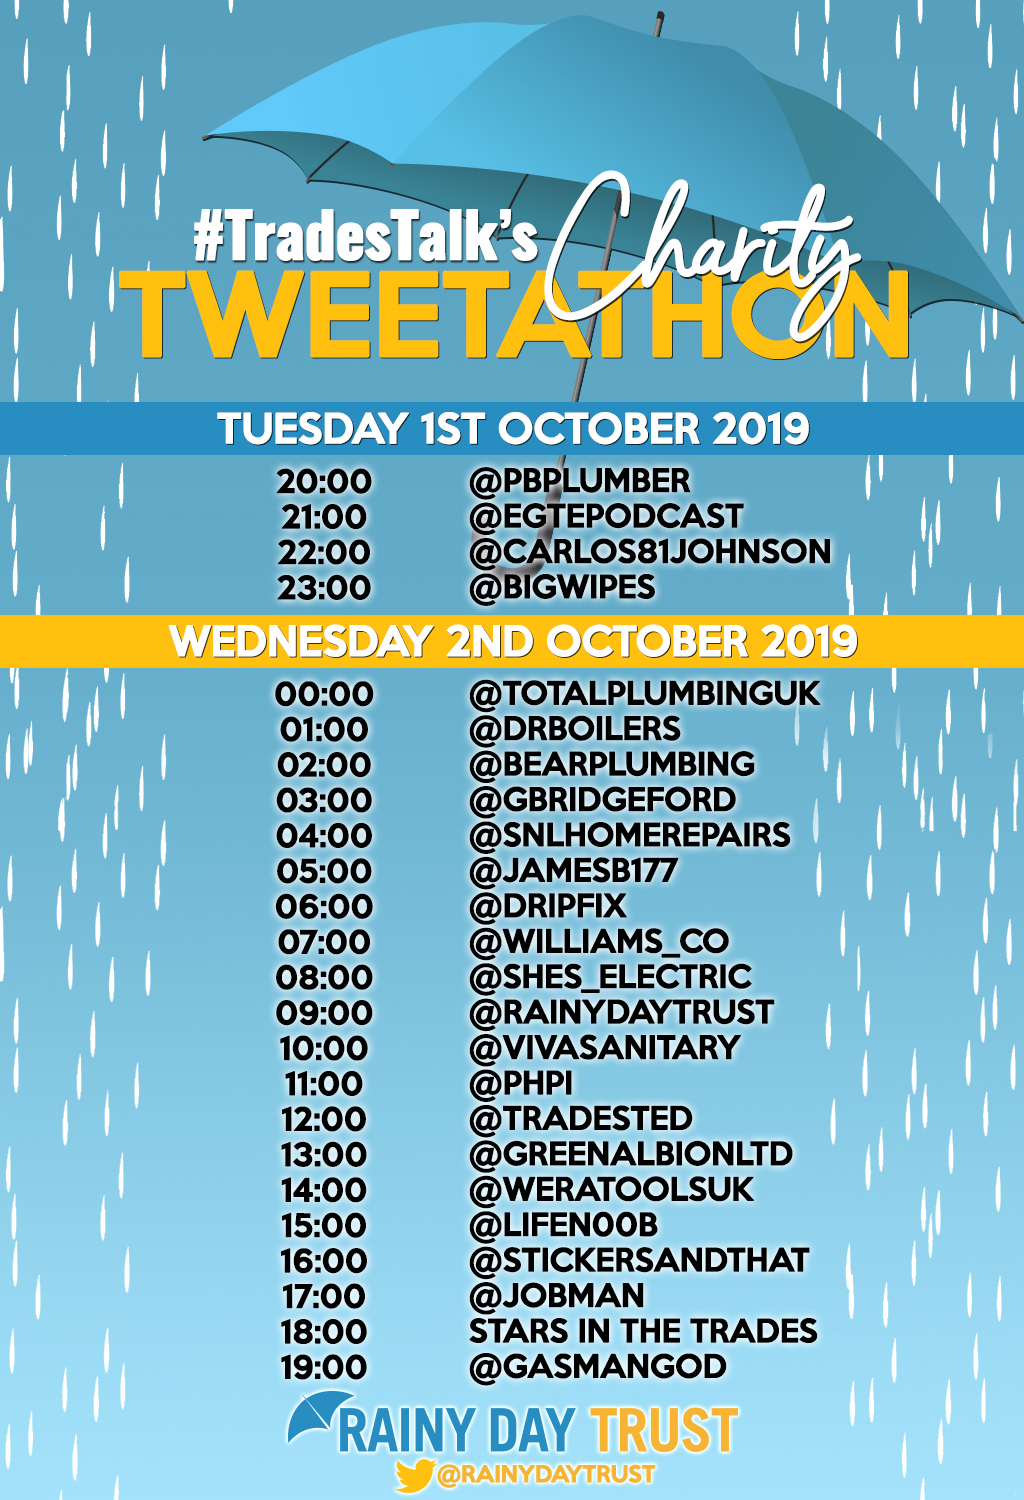 tweetathon line-up